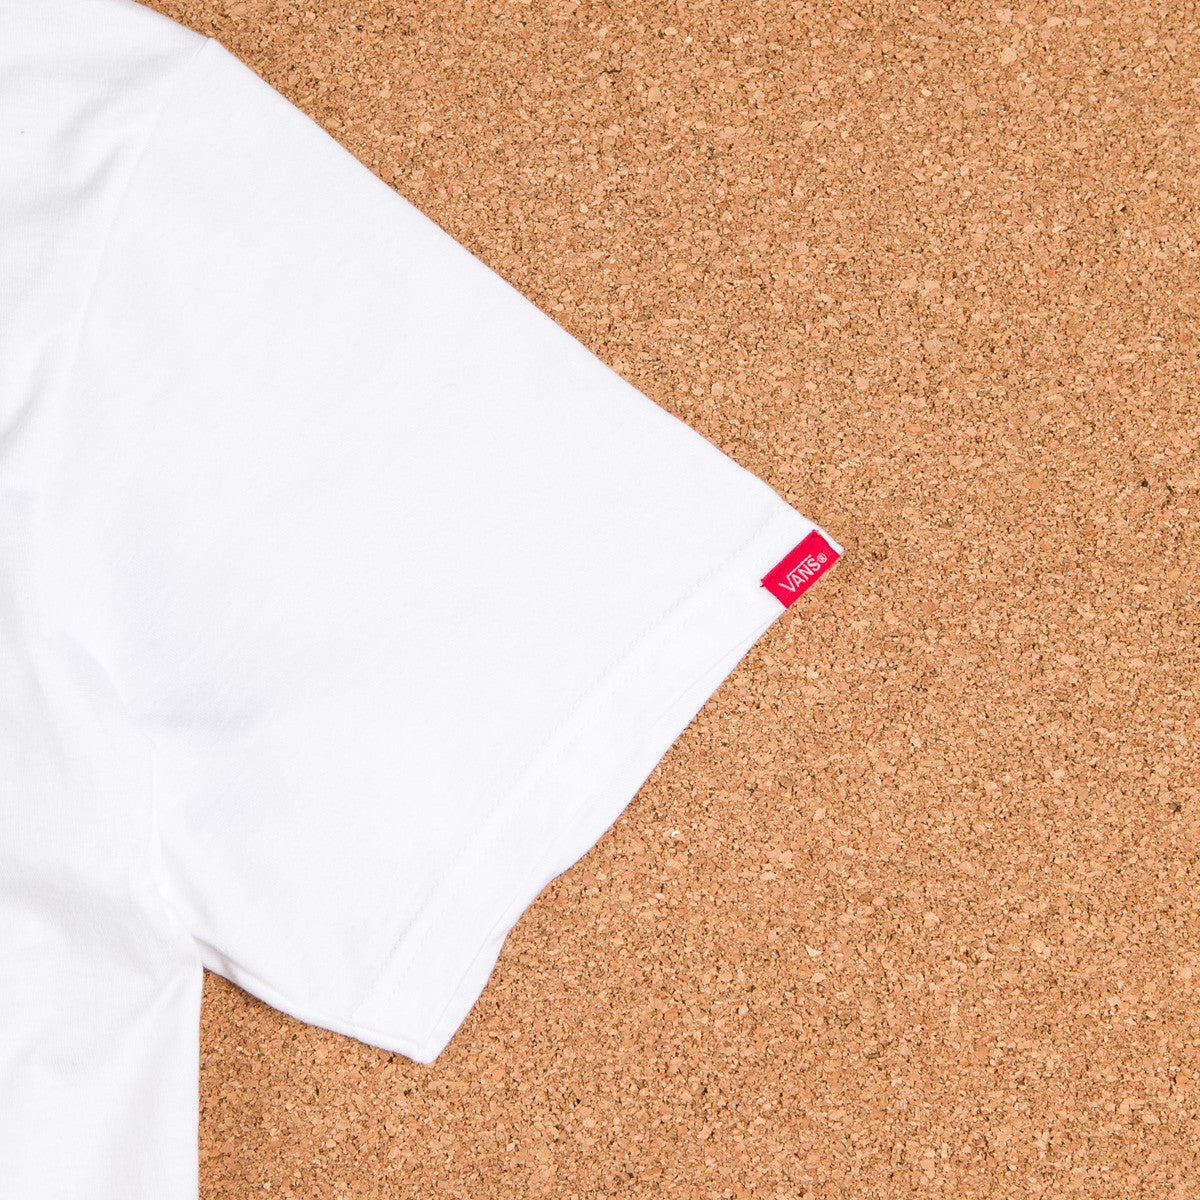 Vans x Pass Port Pocket T-Shirt - White